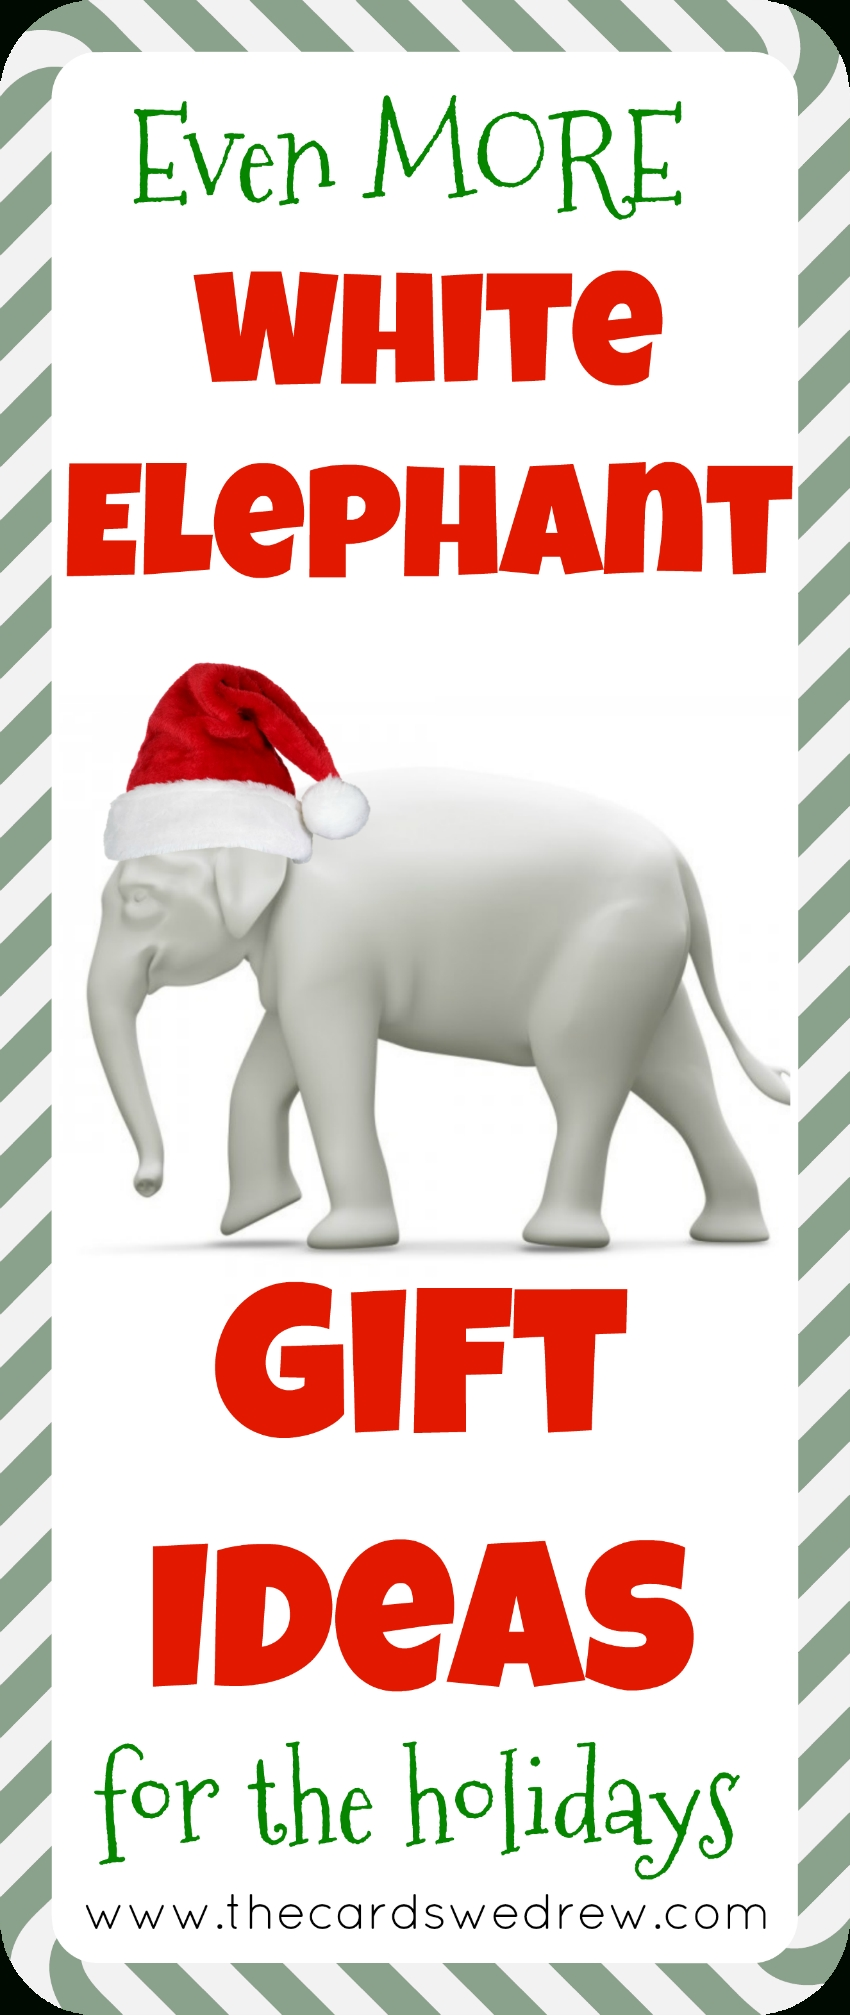 10 Spectacular Ideas For White Elephant Gift even more white elephant gift ideas the cards we drew 2 2020